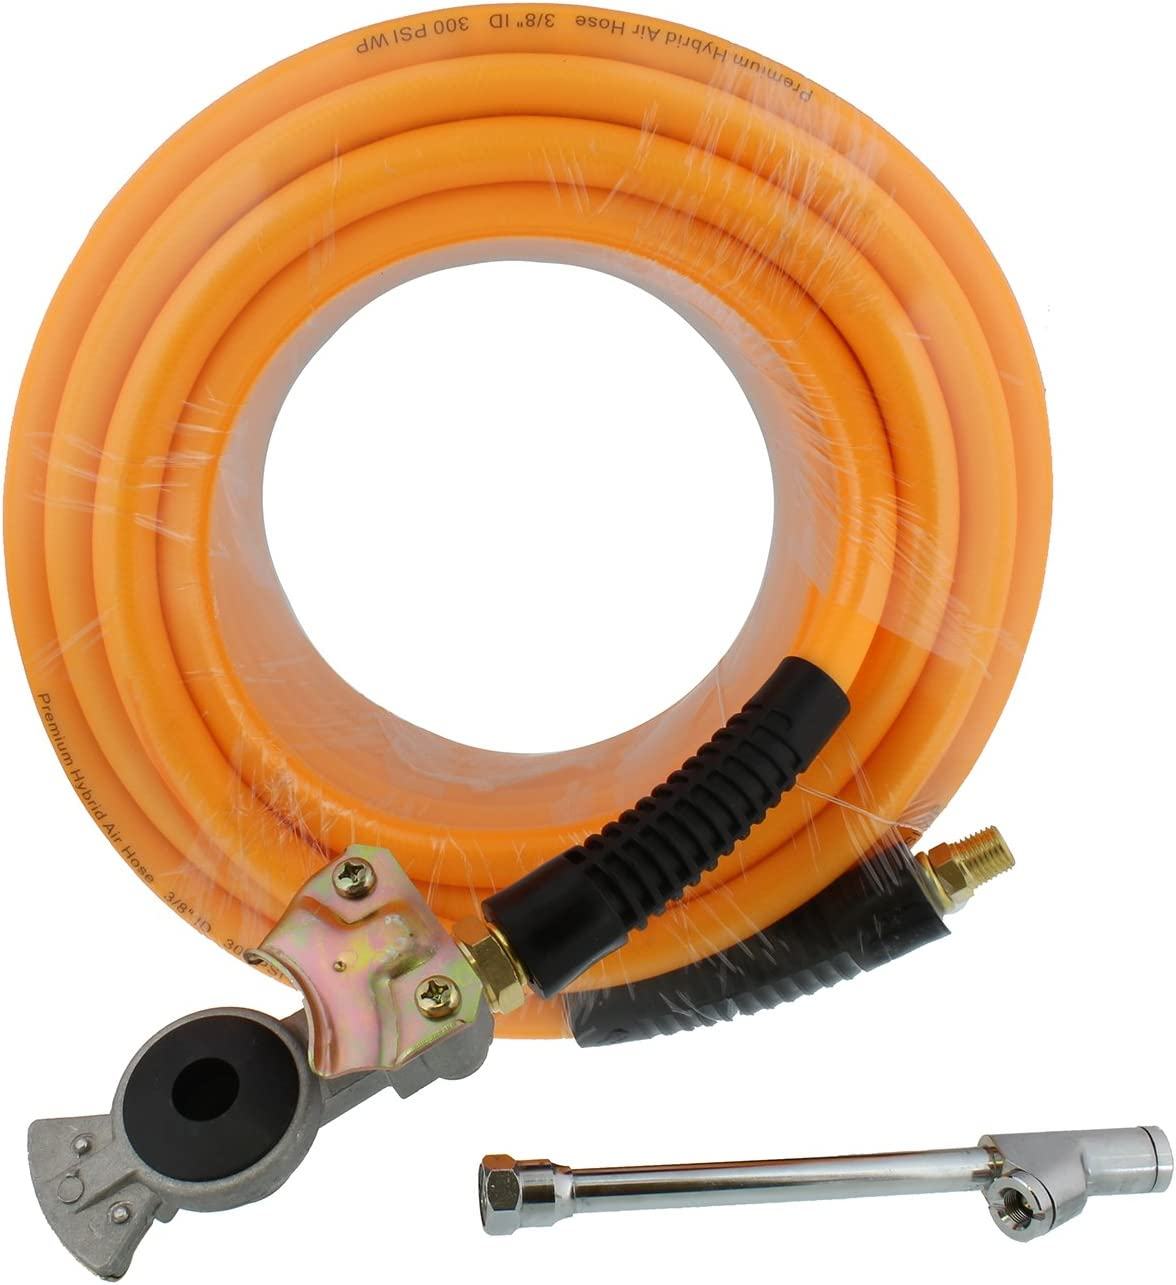 Air Hose Kit 15M Flexible PVC Pneumatic Air Hose with 25pcs Compressor Accessory Kit Tool